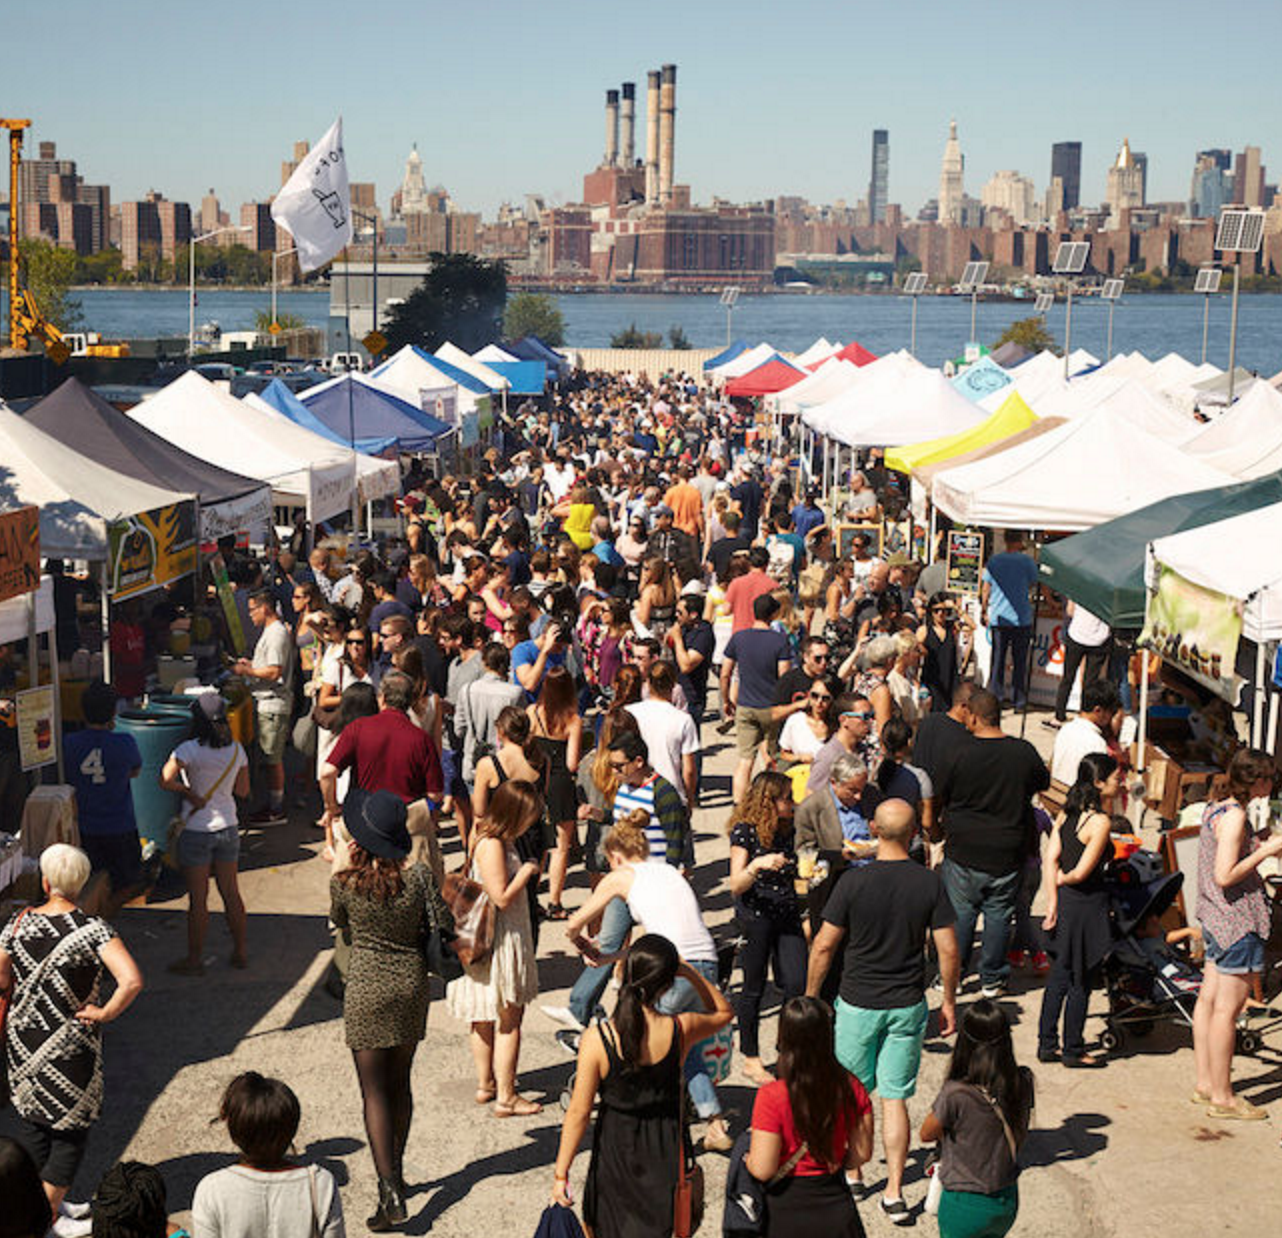 Specialty Travel: The Brooklyn Guide - Specialty